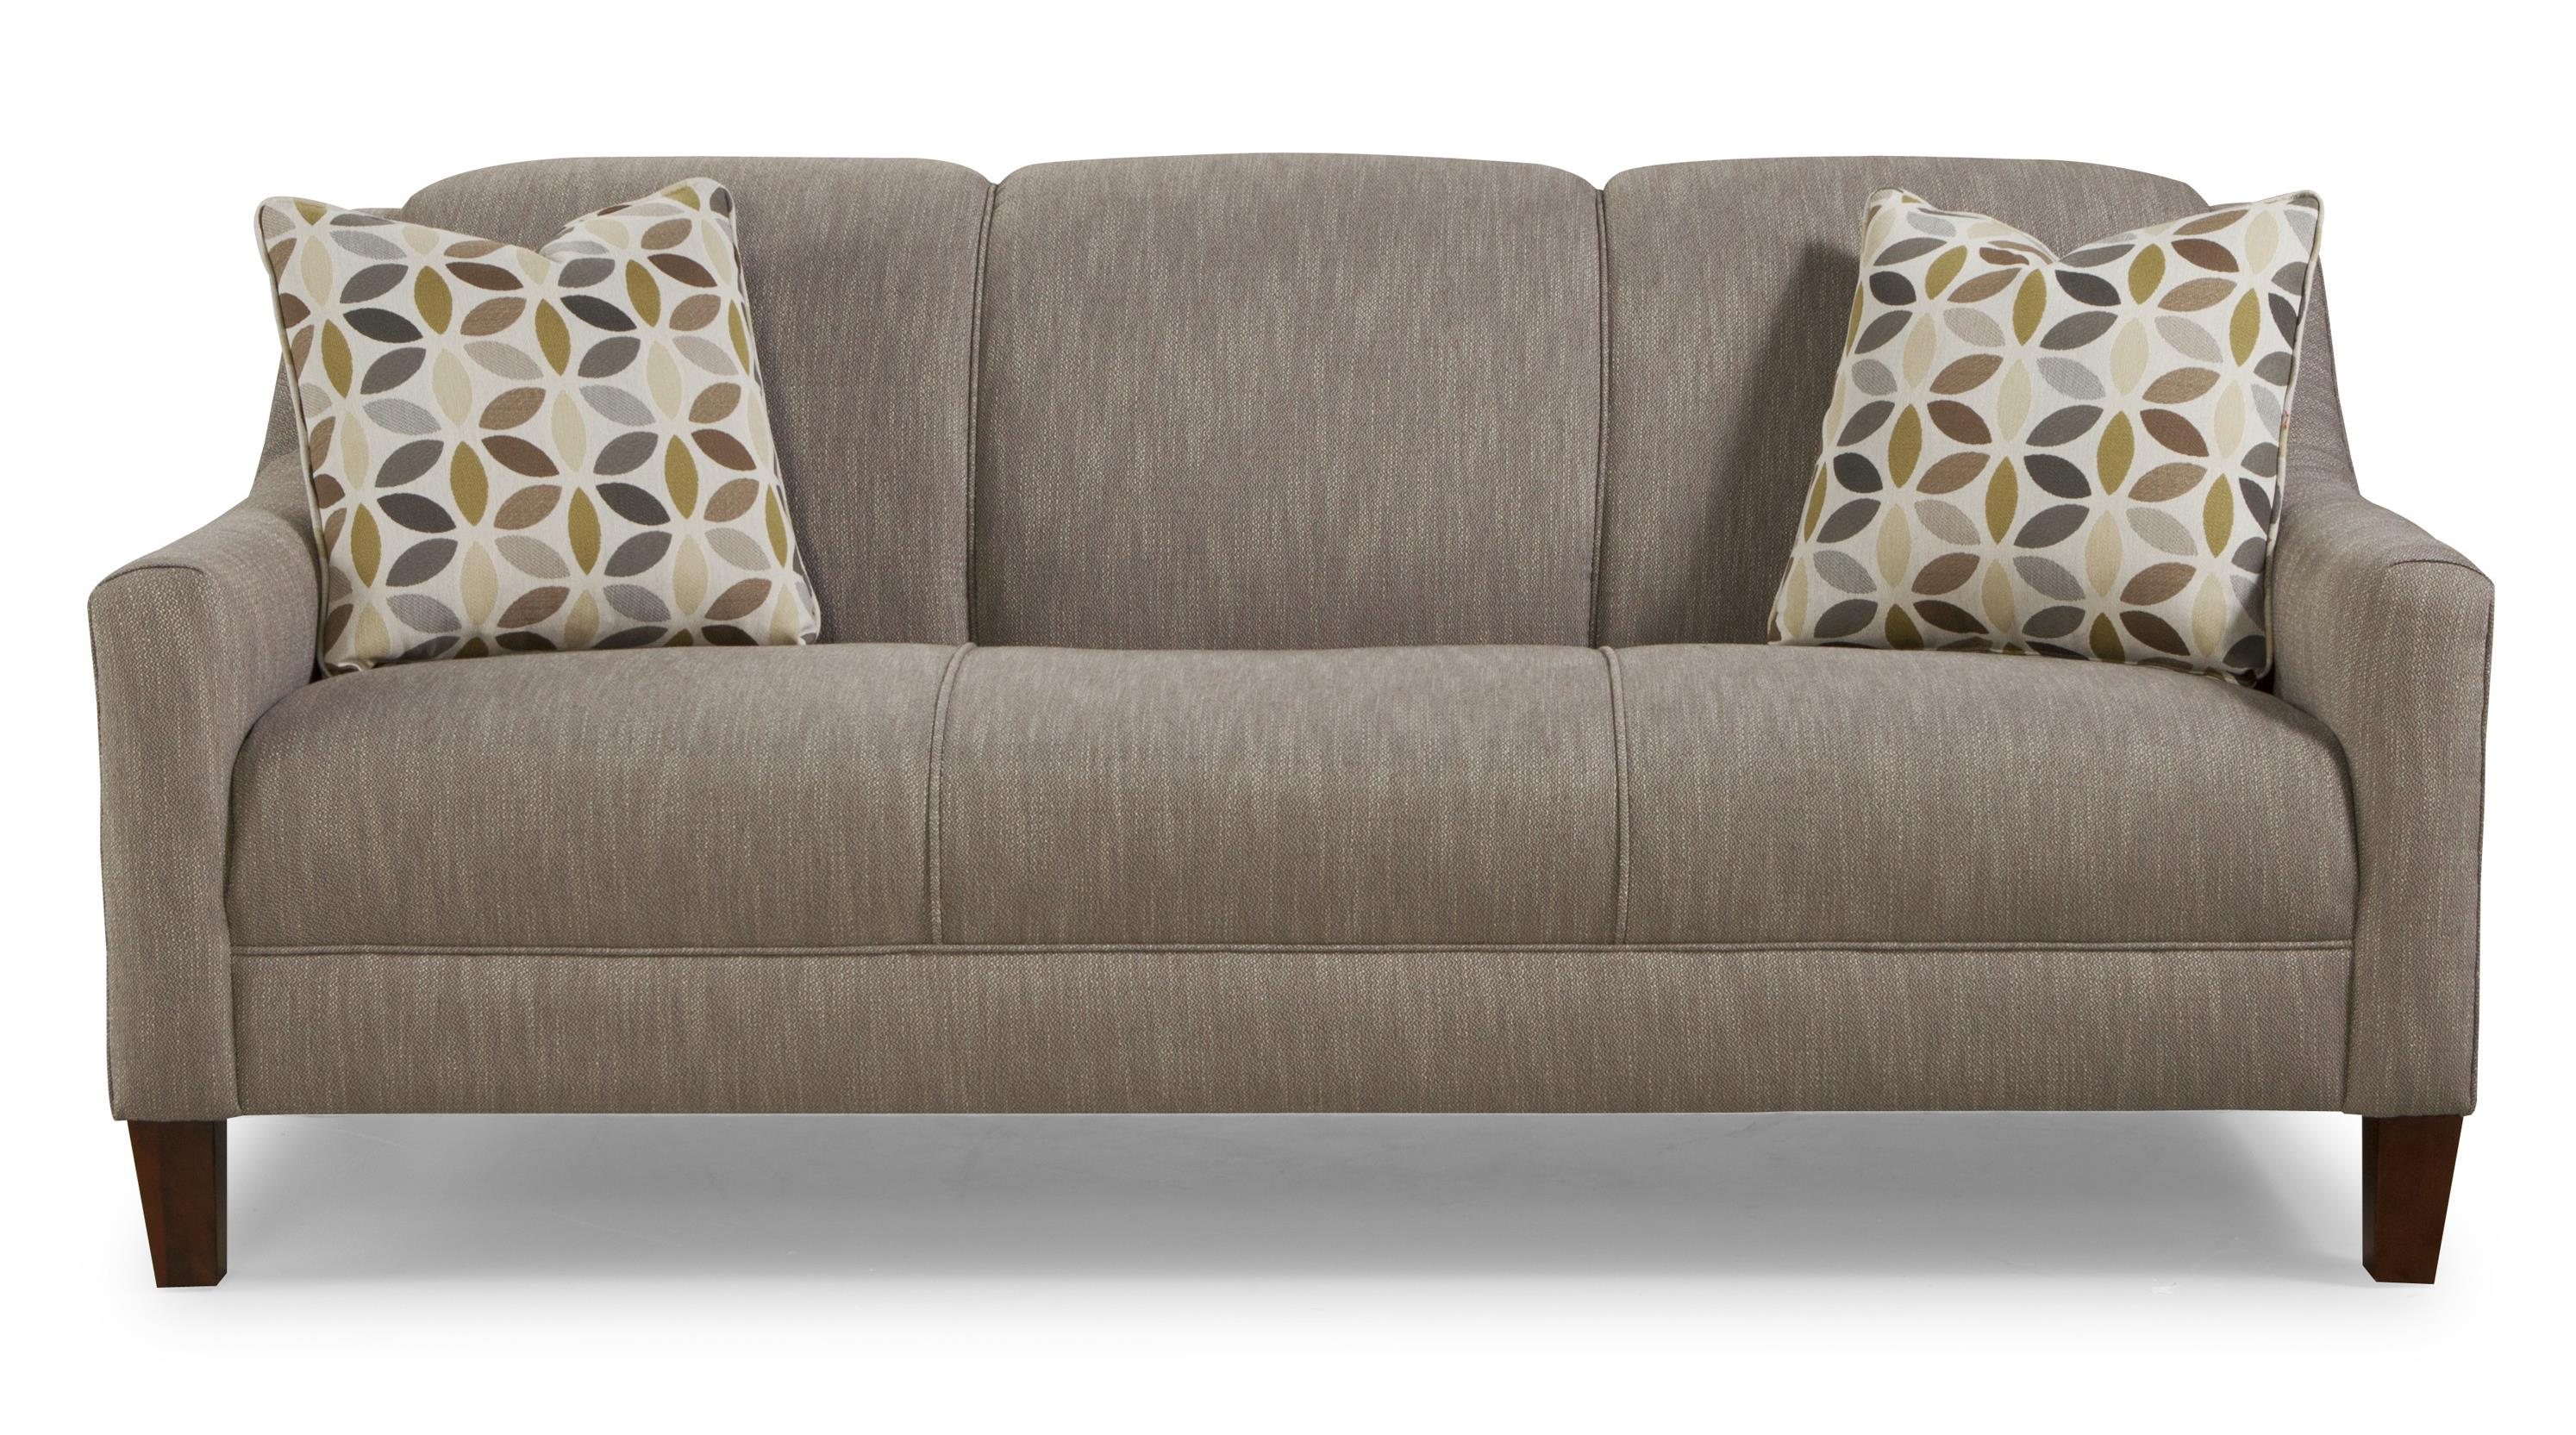 Small Room Sectional Couch For Apartment